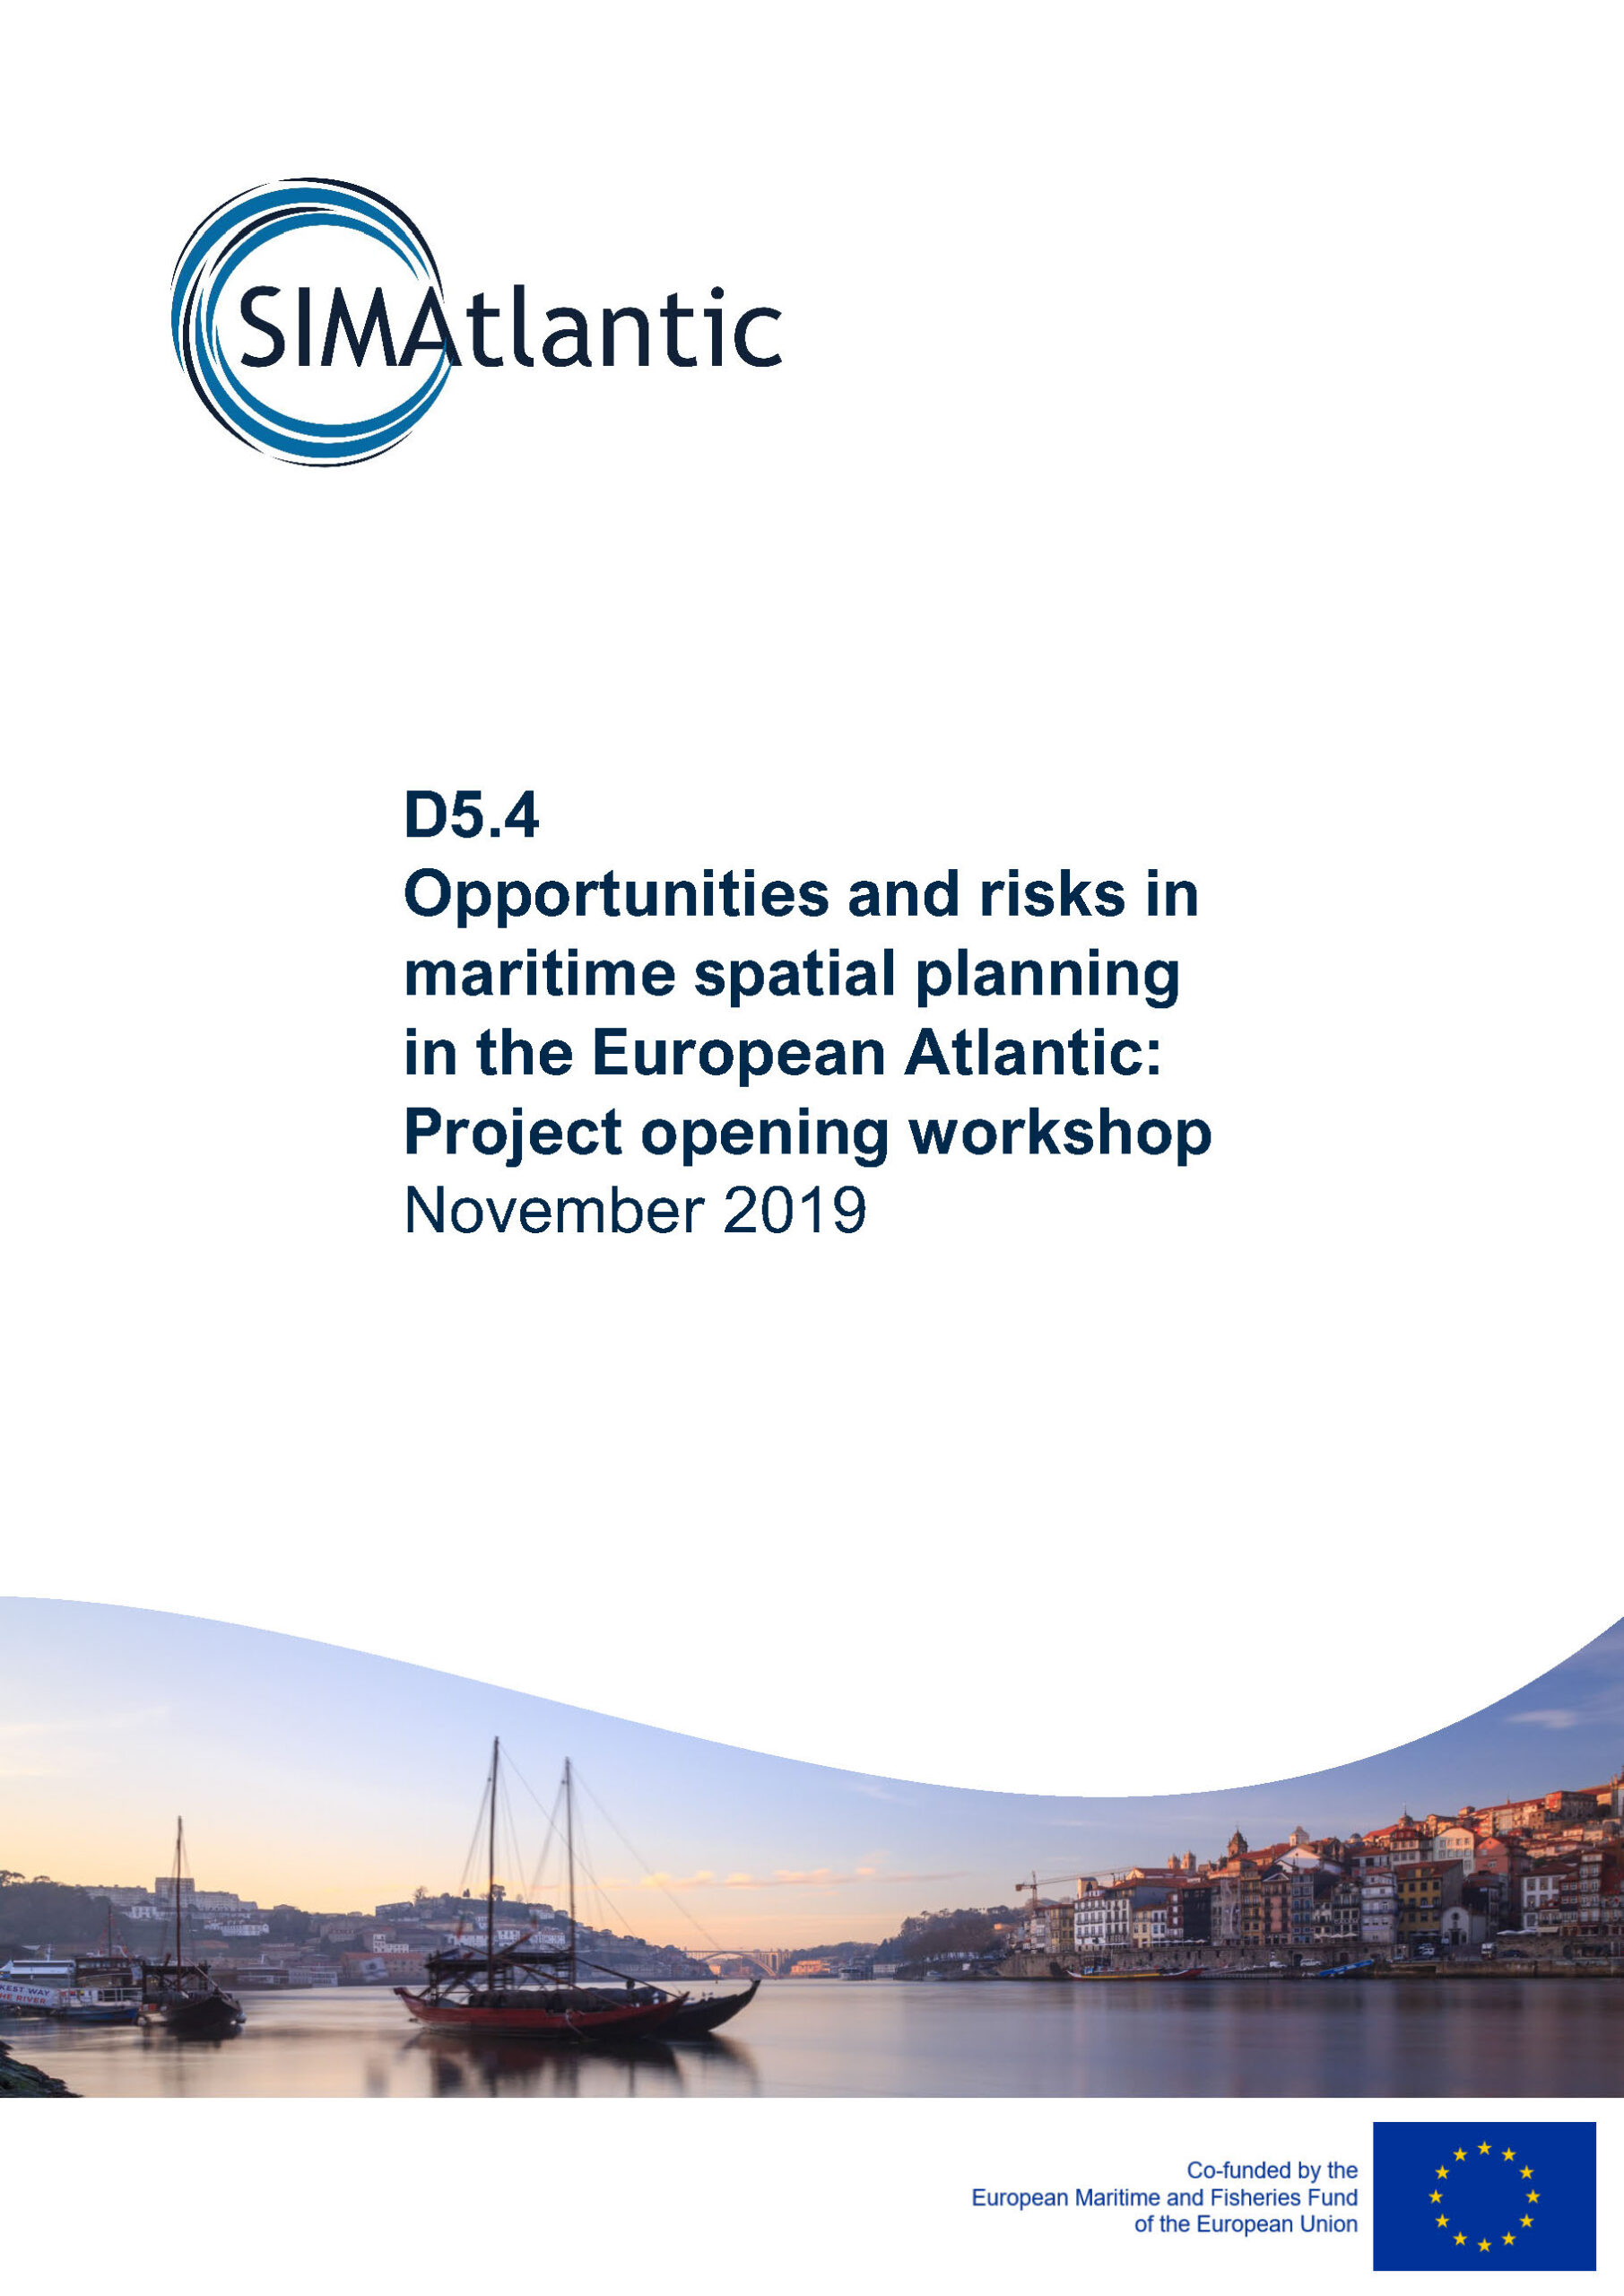 D5.4 Report of project opening workshop